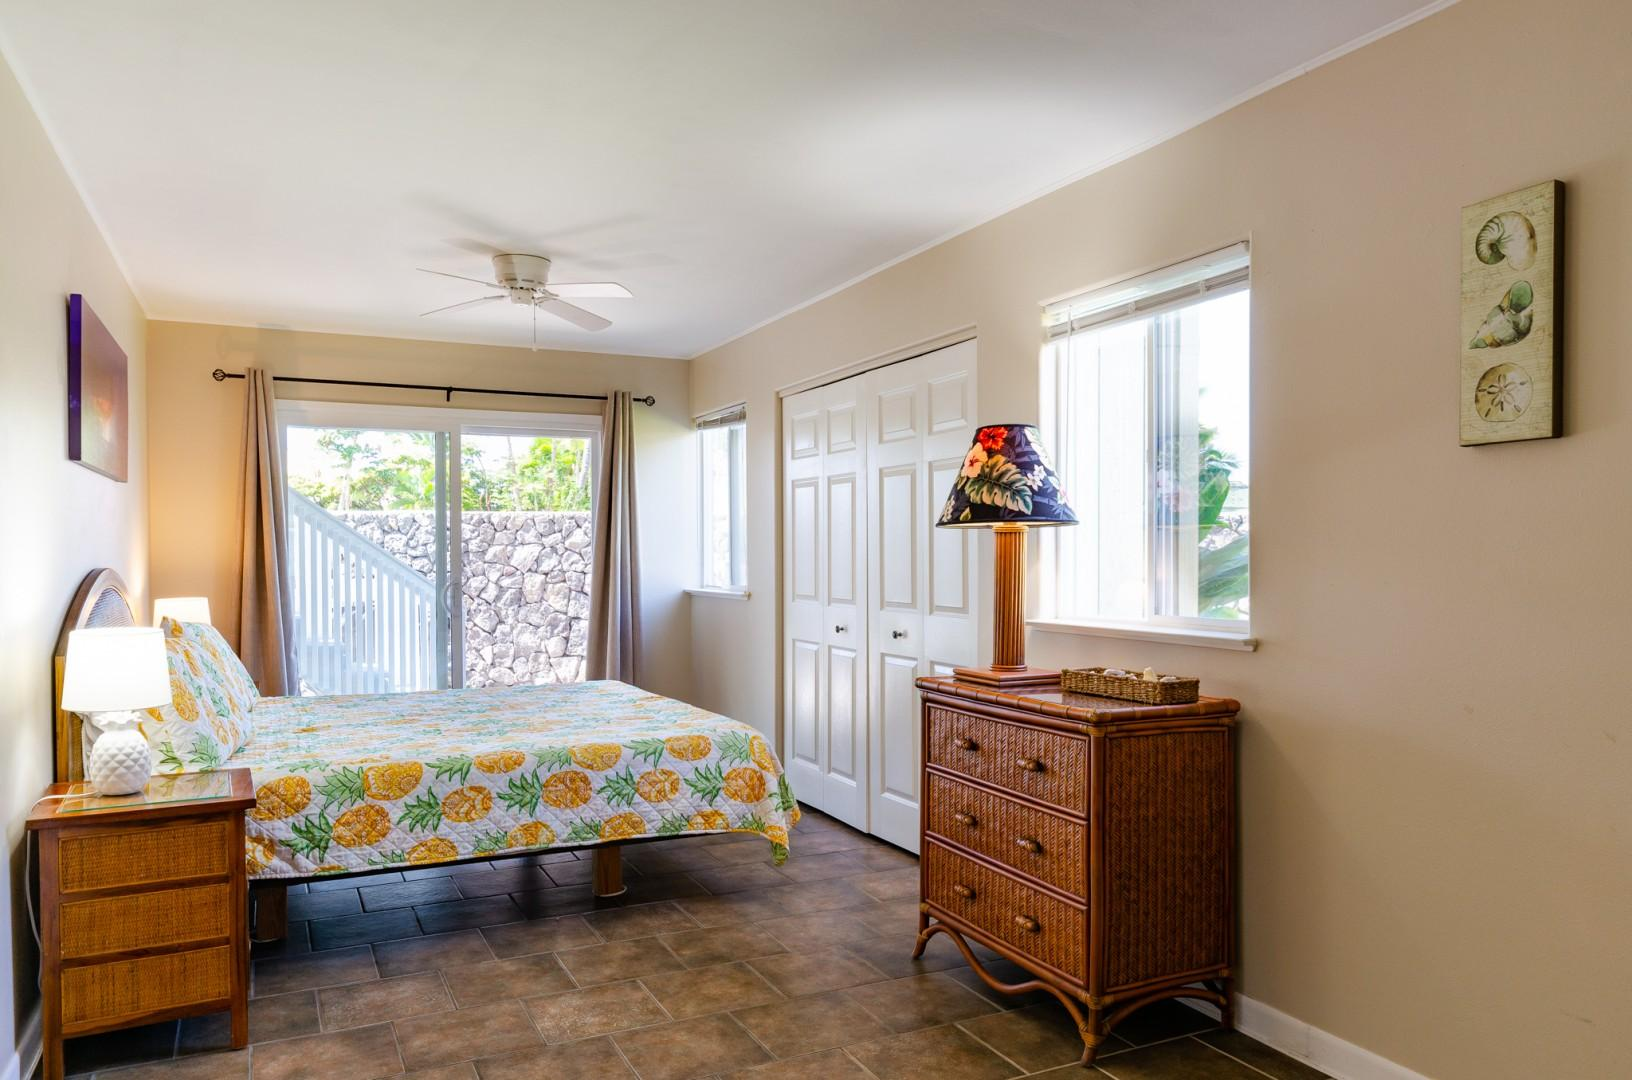 Lanai Access from the bedroom